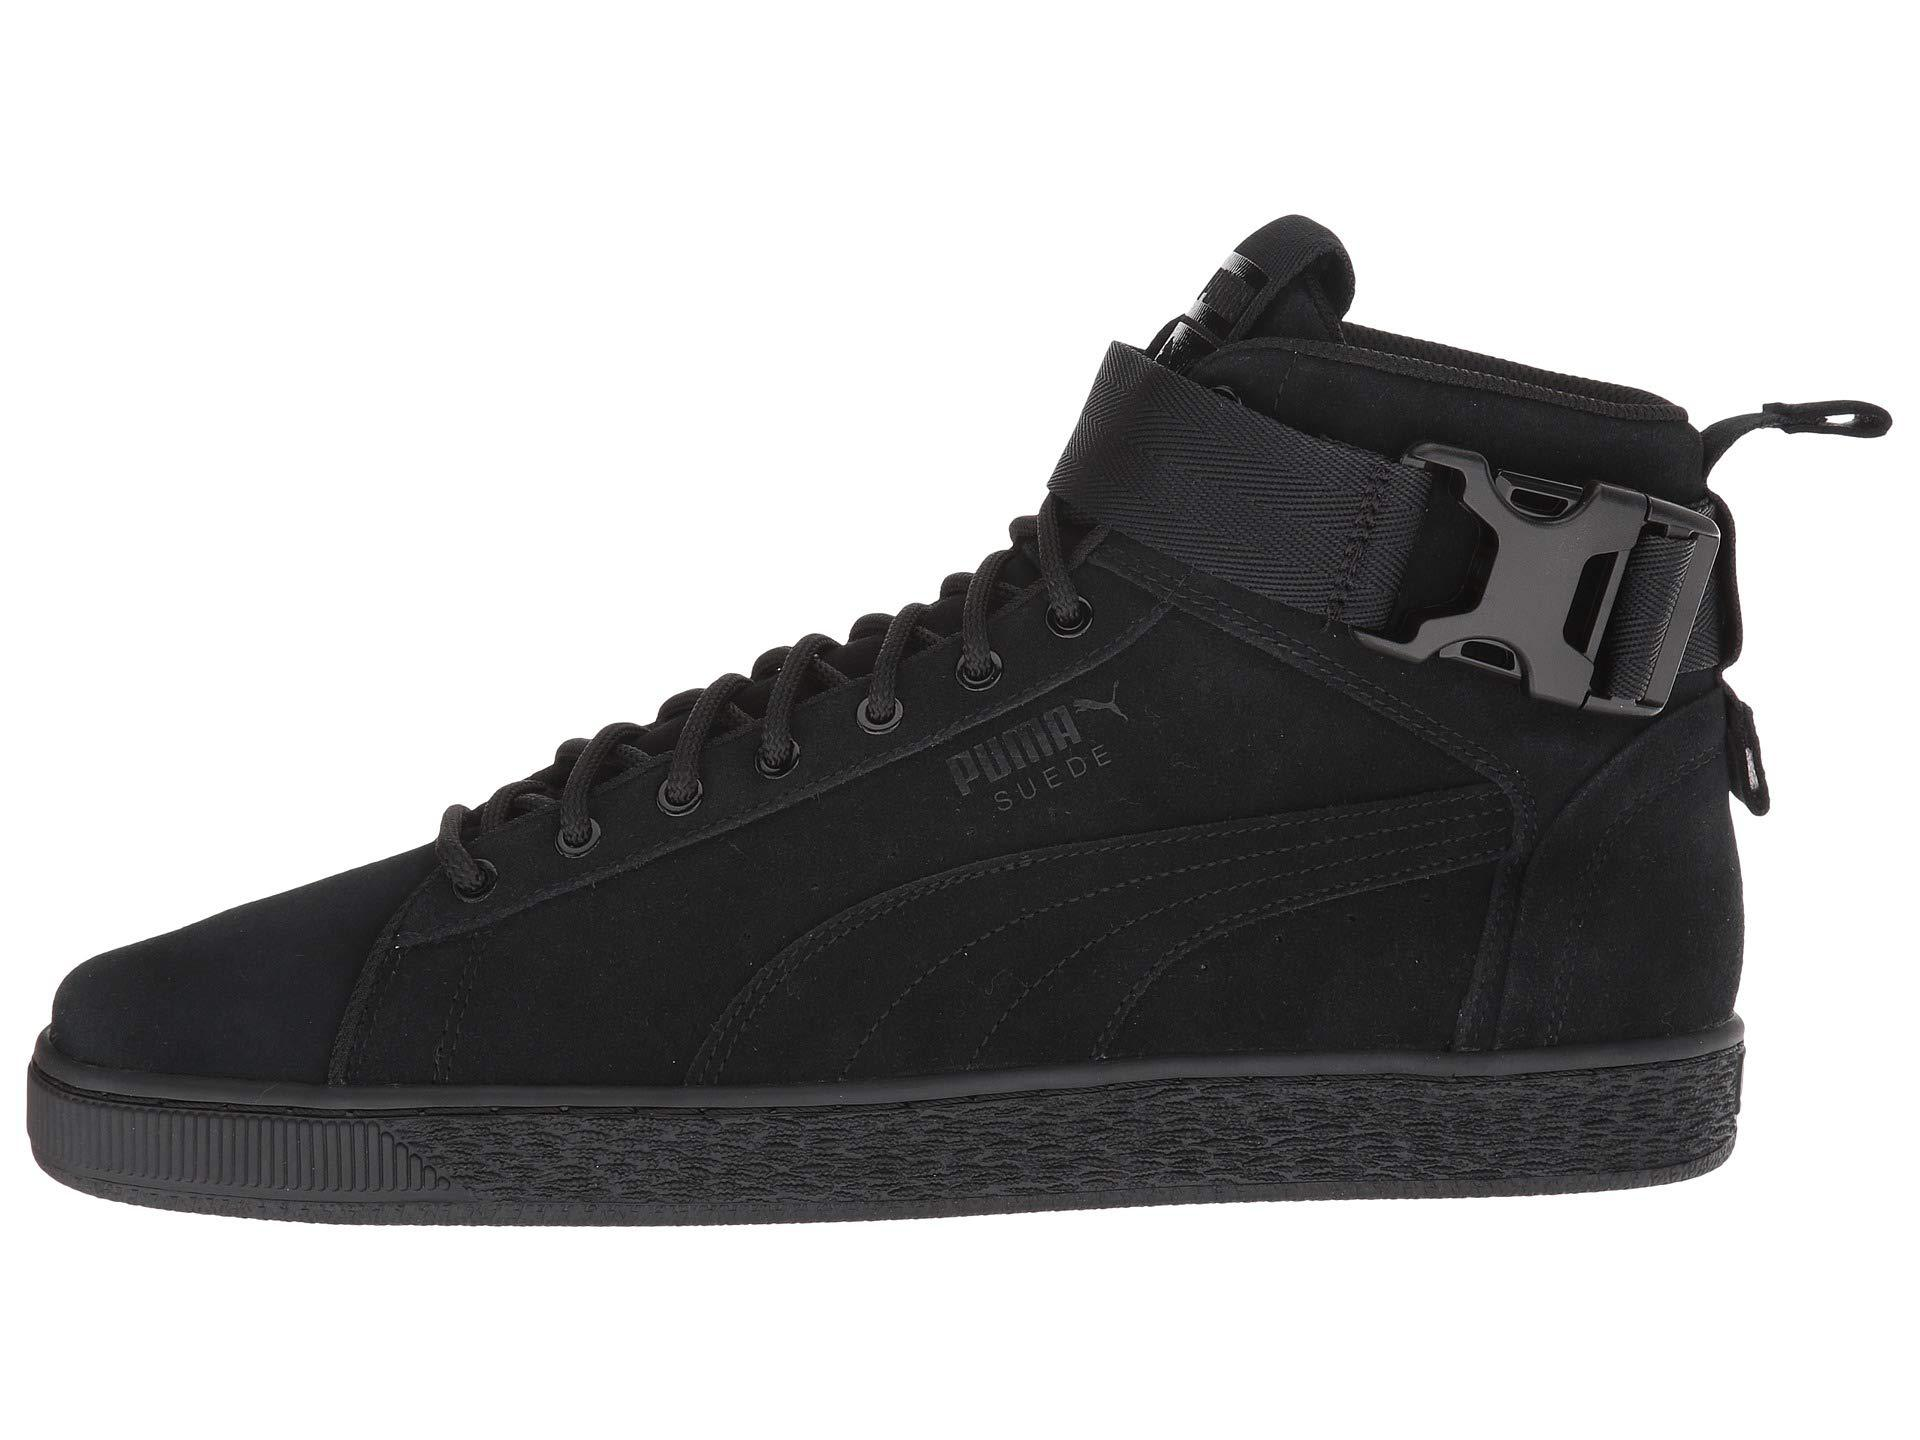 PUMA S Suede Classic Mid Buckle in